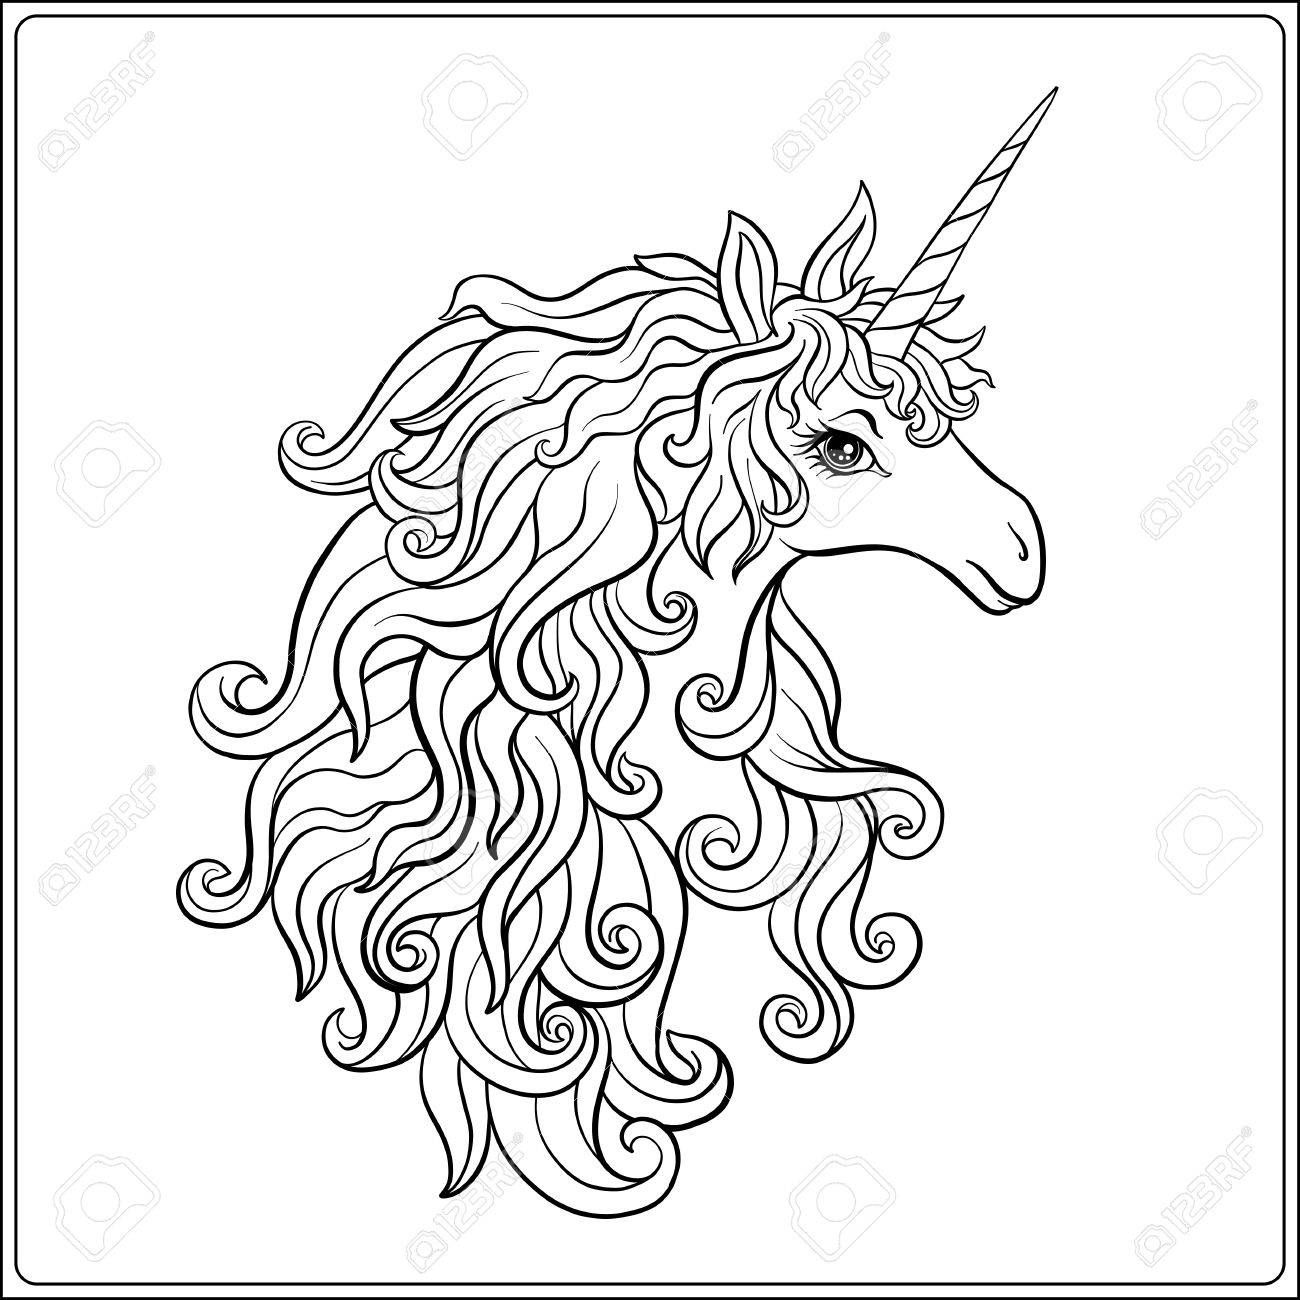 Unicorn Outline Drawing